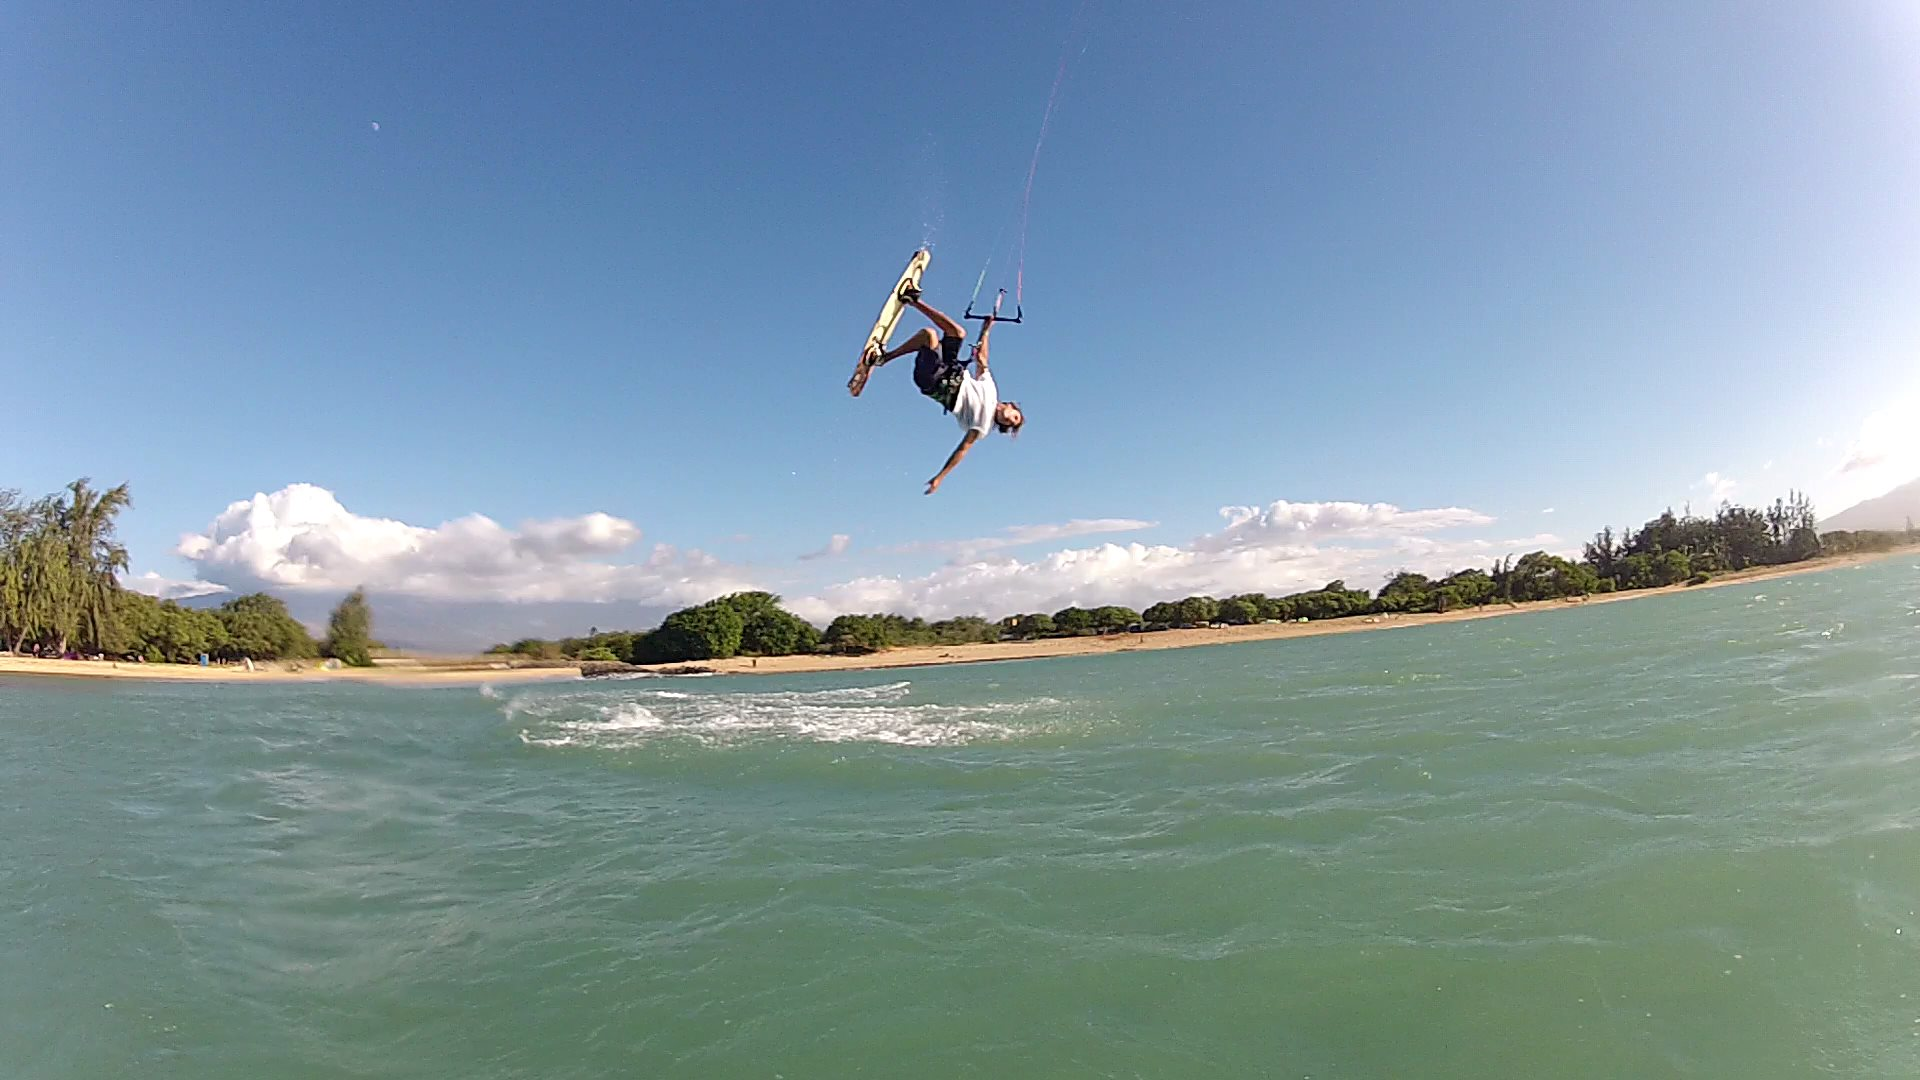 Corey Gallagher, Maui Kiteboarding